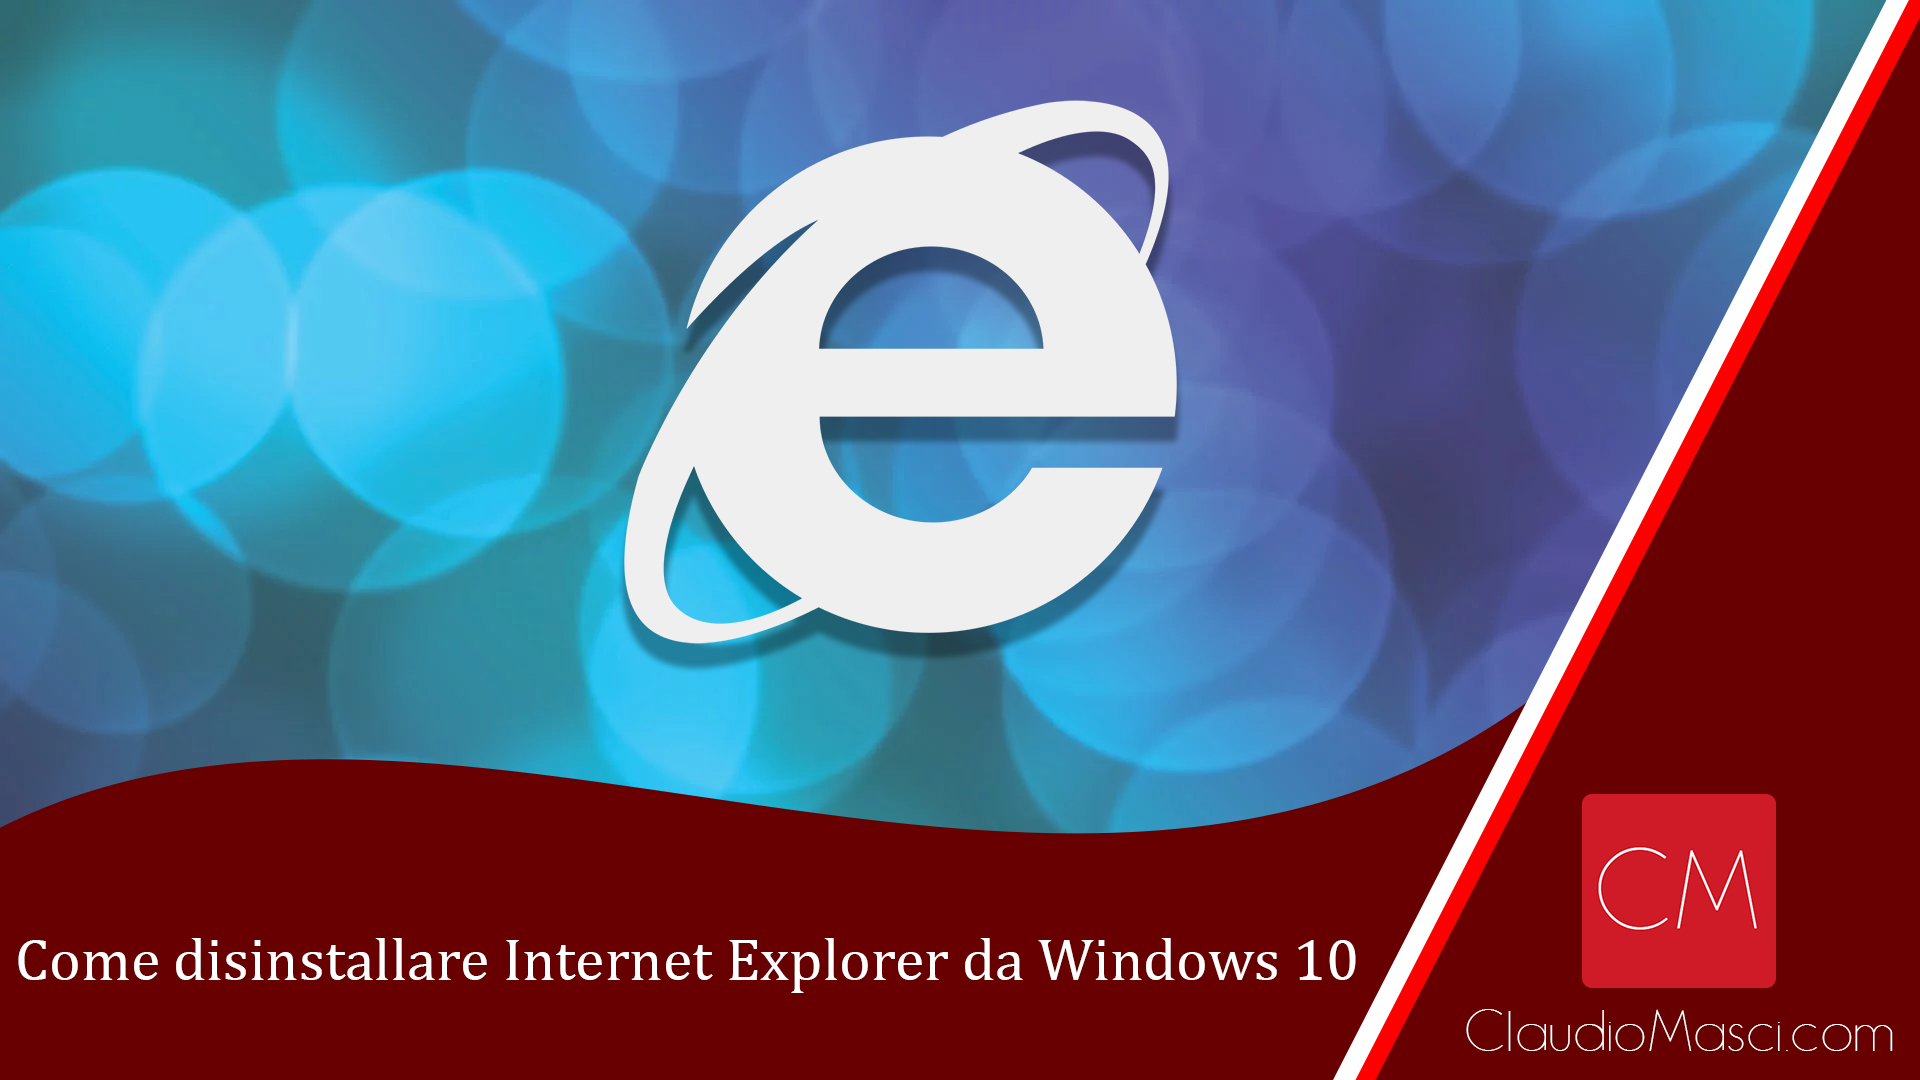 Come disinstallare Internet Explorer da Windows 10